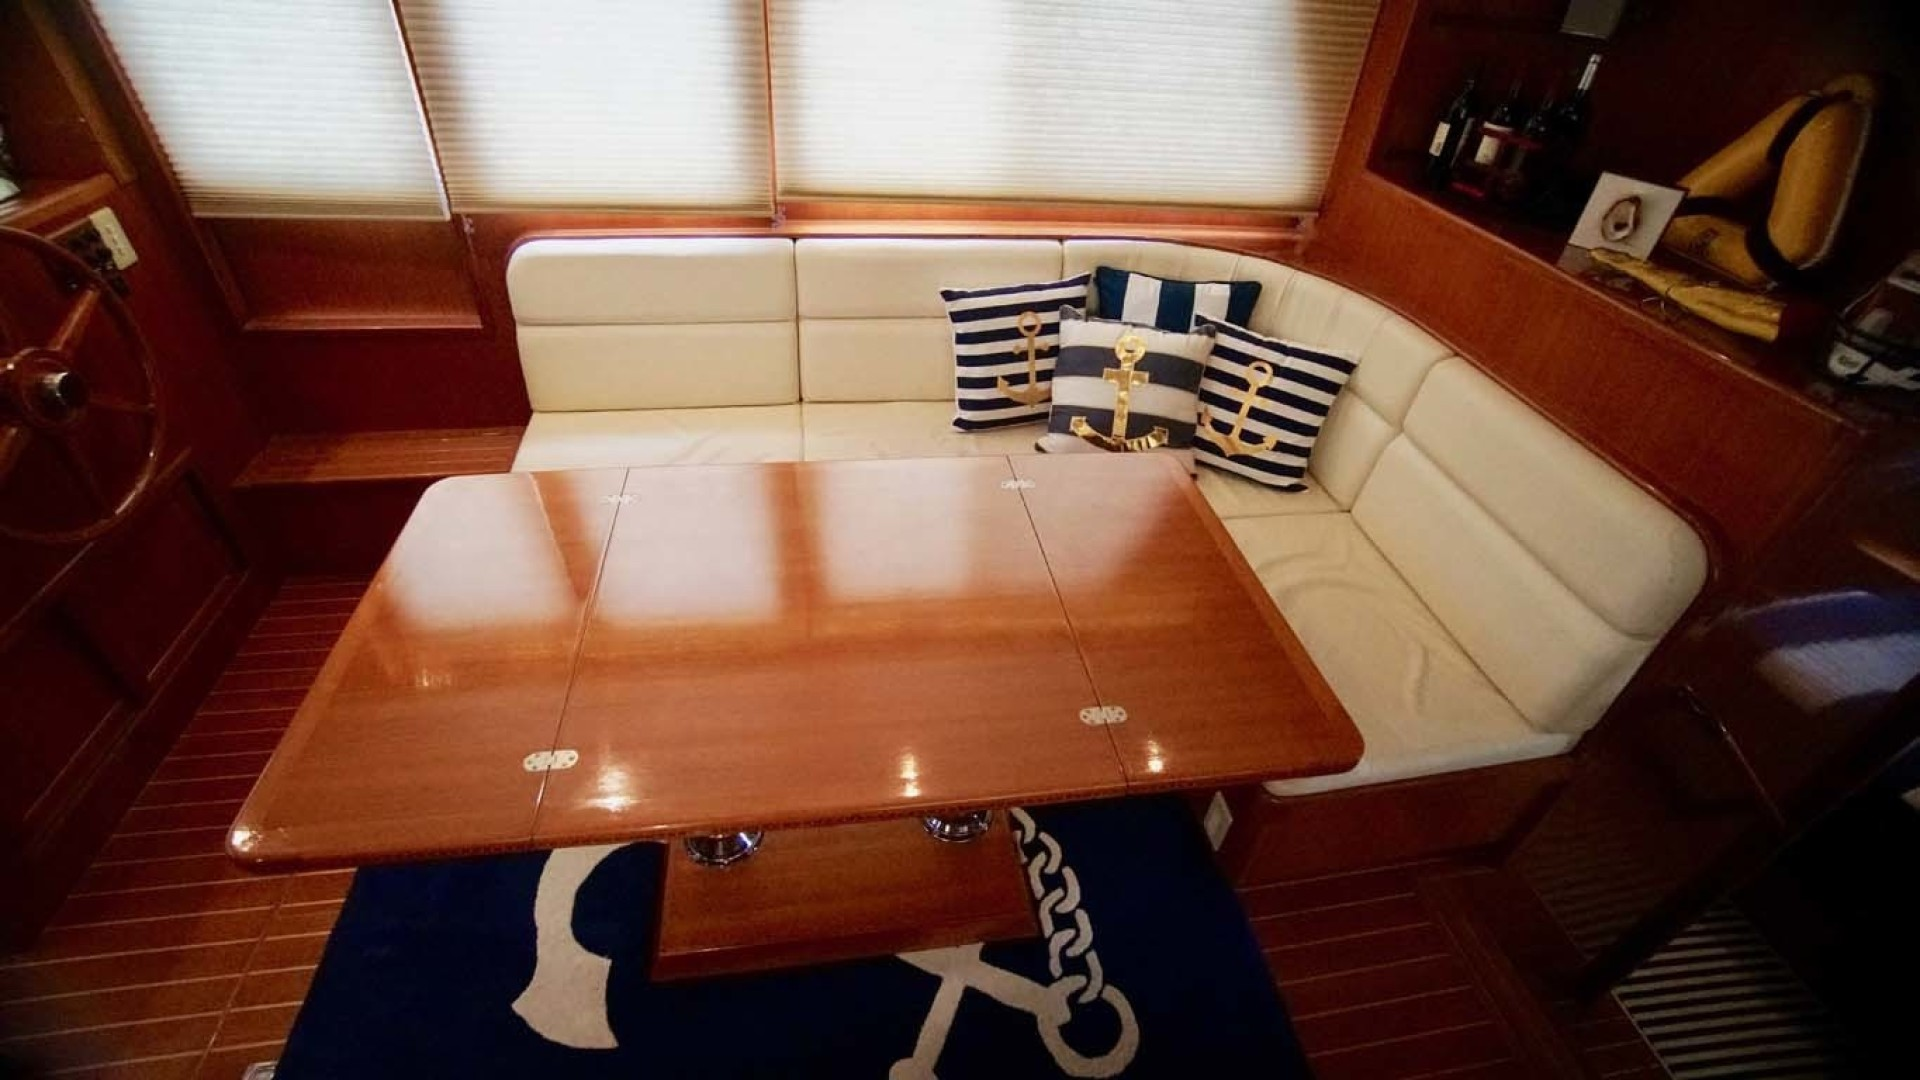 Novatec-48 Fast Trawler 2003-SINE DIE II Destin-Florida-United States-Salon Seating And Table-1360610 | Thumbnail